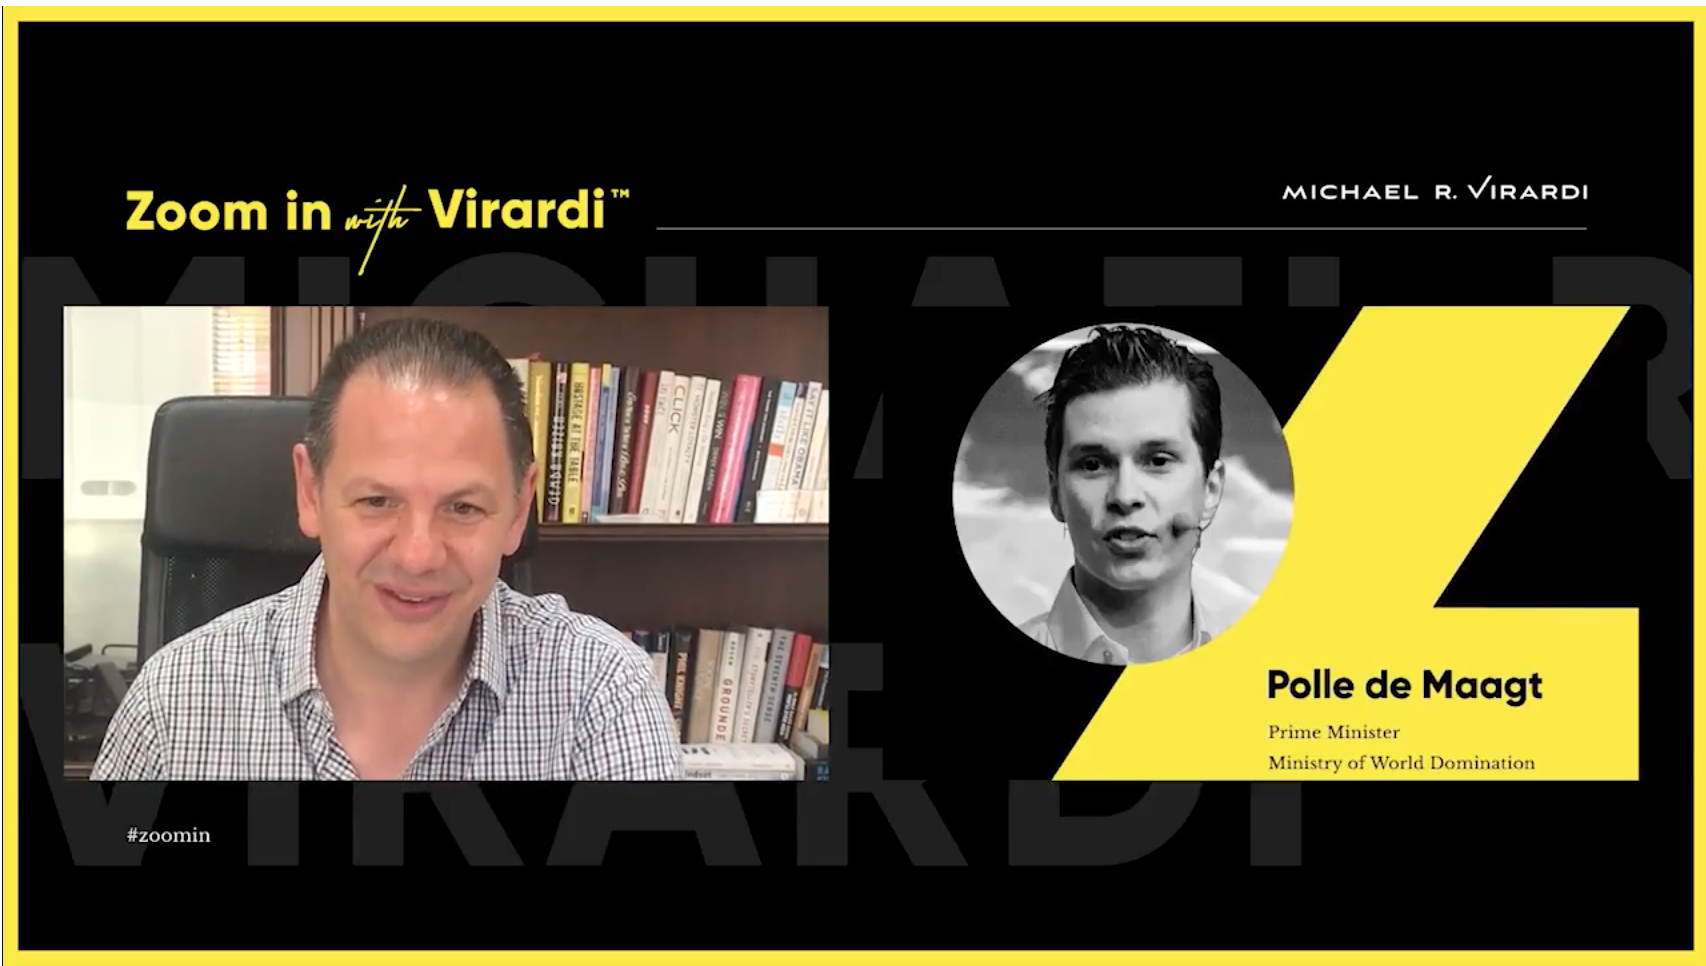 Michael Virardi - ZOOM IN with VIRARDI™ | Polle de Maagt | Ministry of World Domination | Episode 4